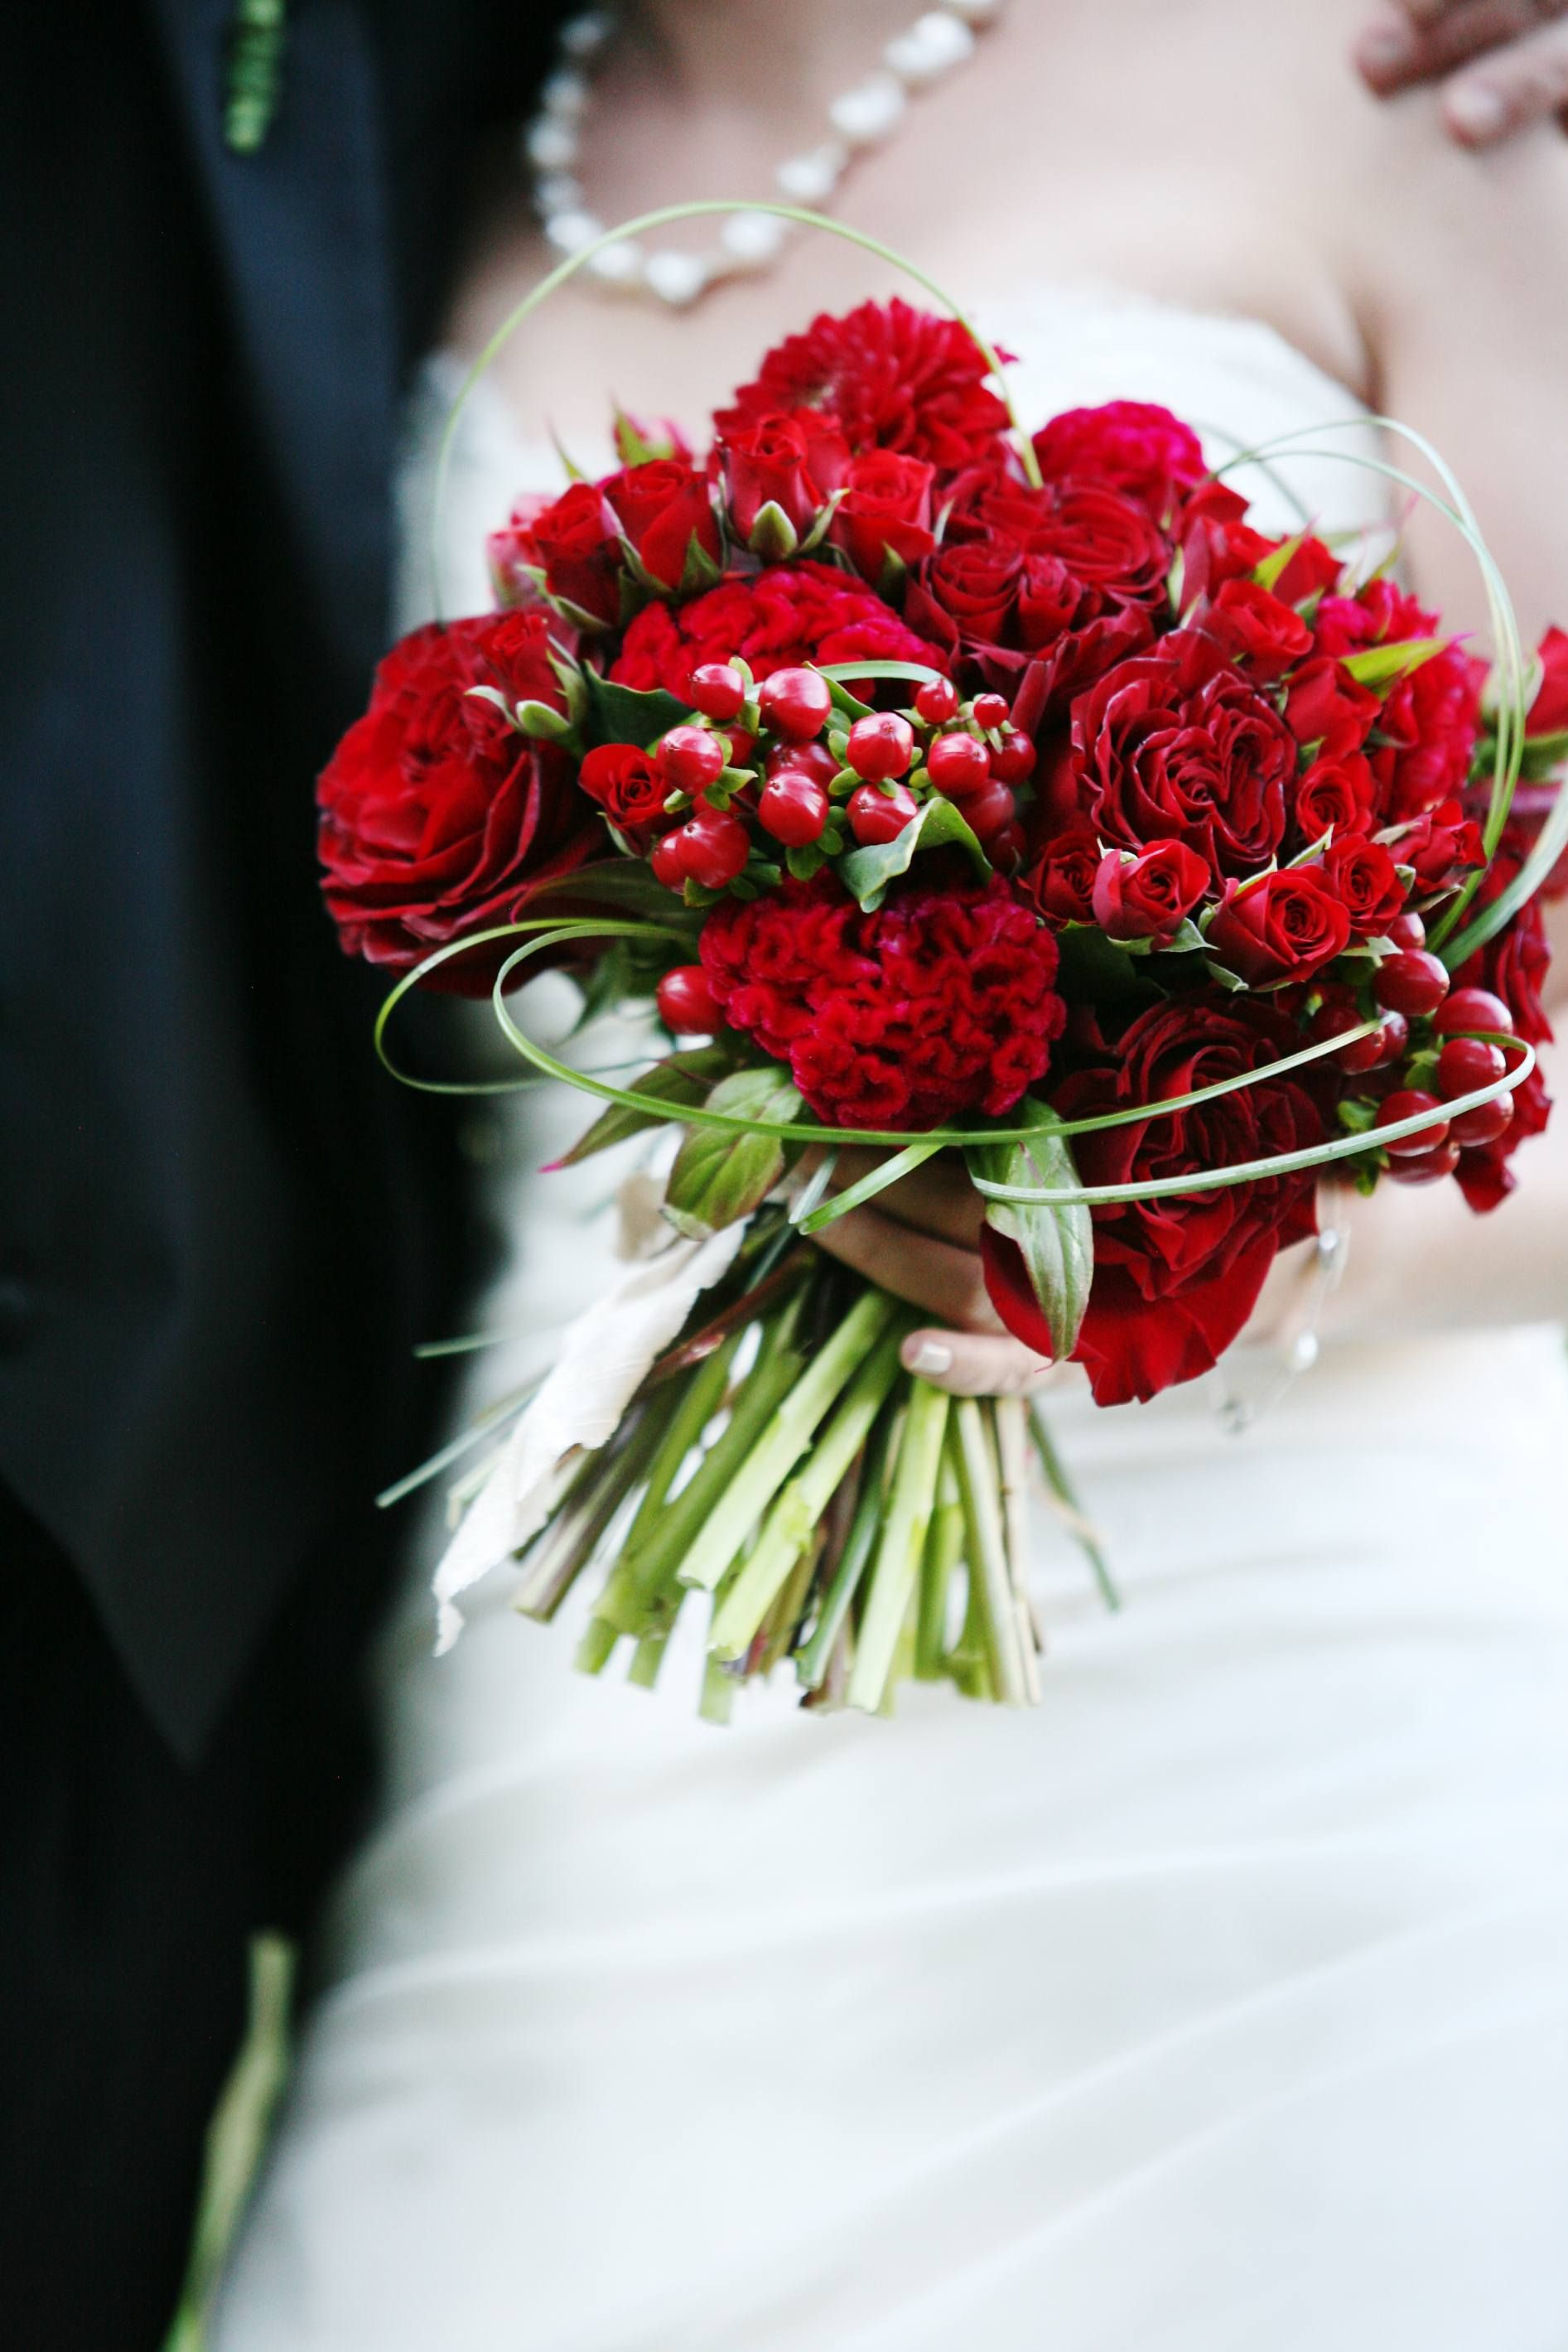 Red bridal bouquet red garden roses spray roses celosia